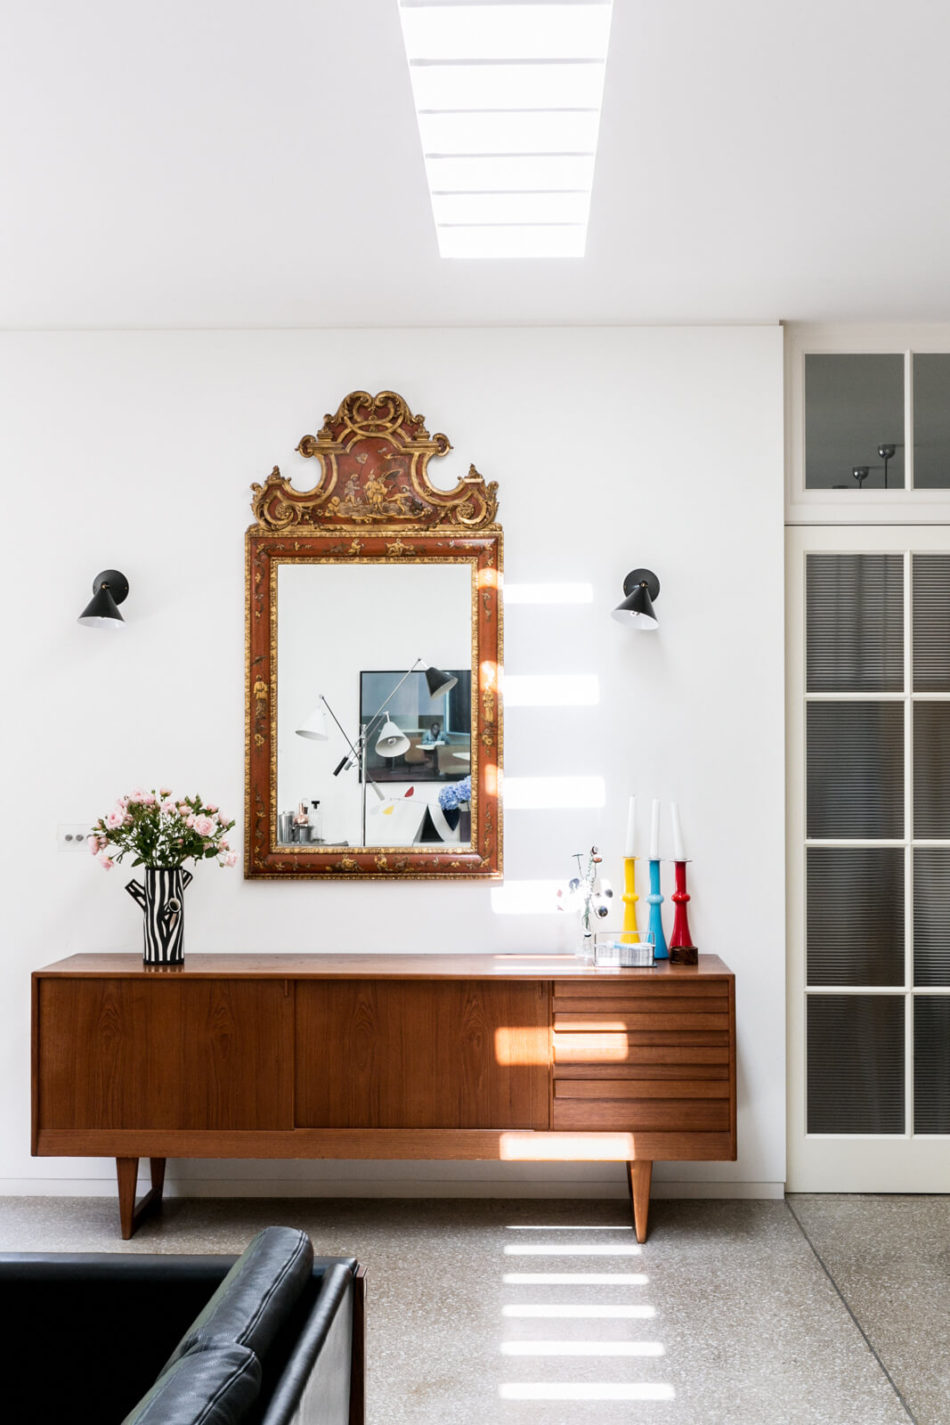 My Modern House: supper club extraordinaire Hanna Goldsmith shows us round her re-imagined 1930s house in Maida Vale